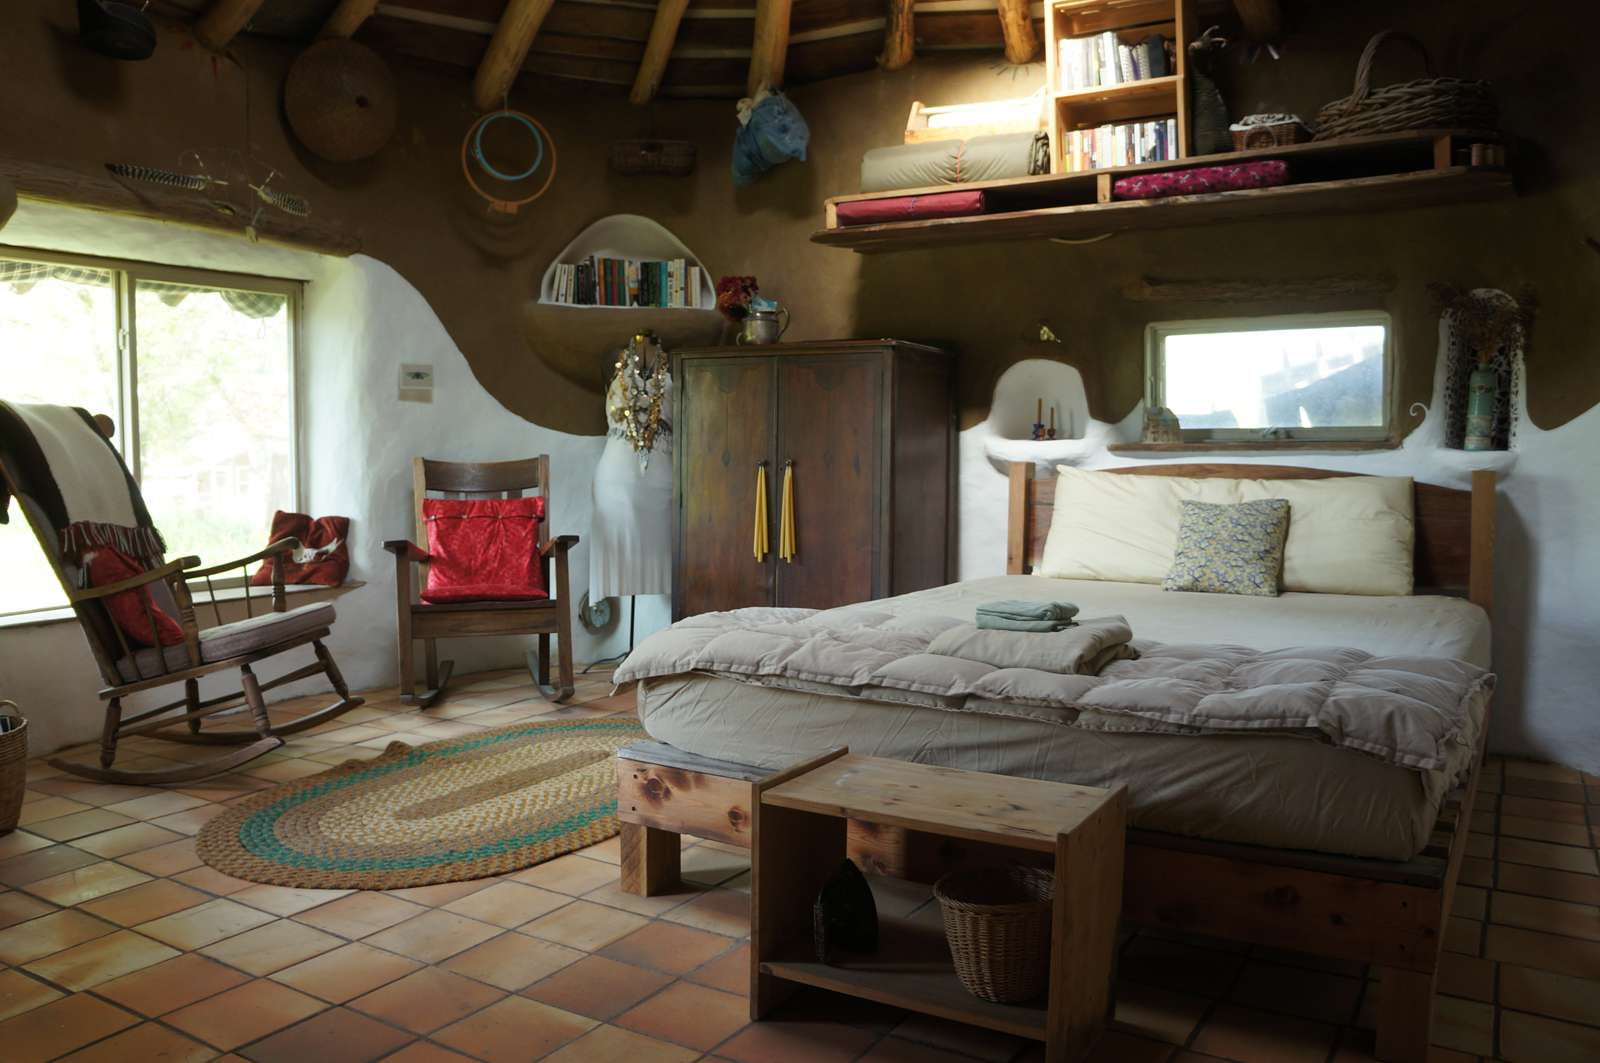 The interior of cob house showing a bedroom set up.